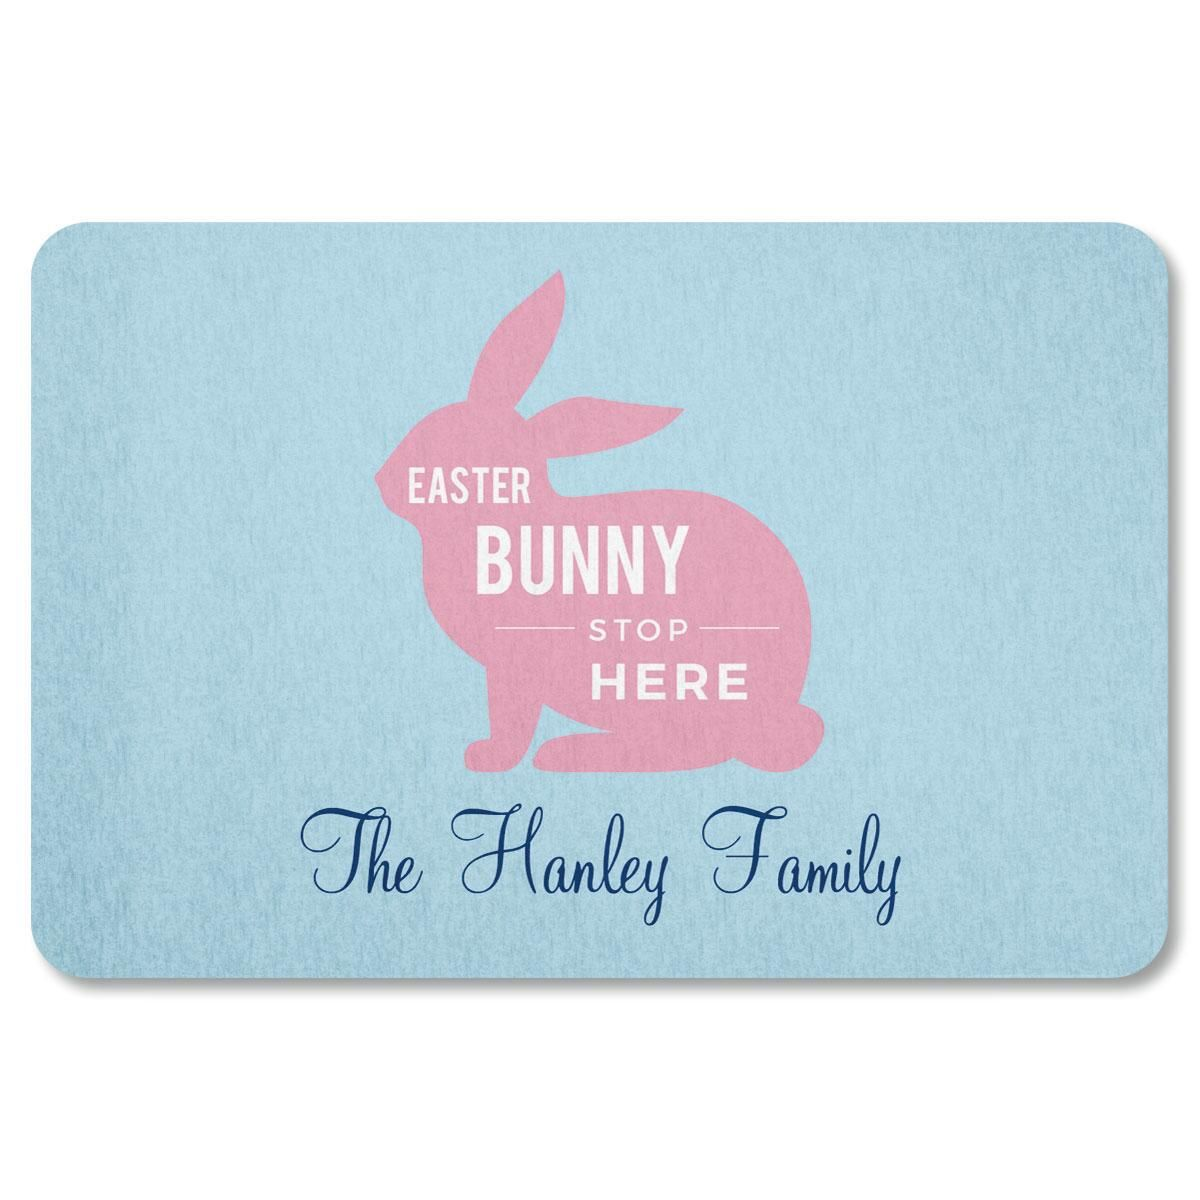 Easter Bunny Stop Here Personalized Doormat